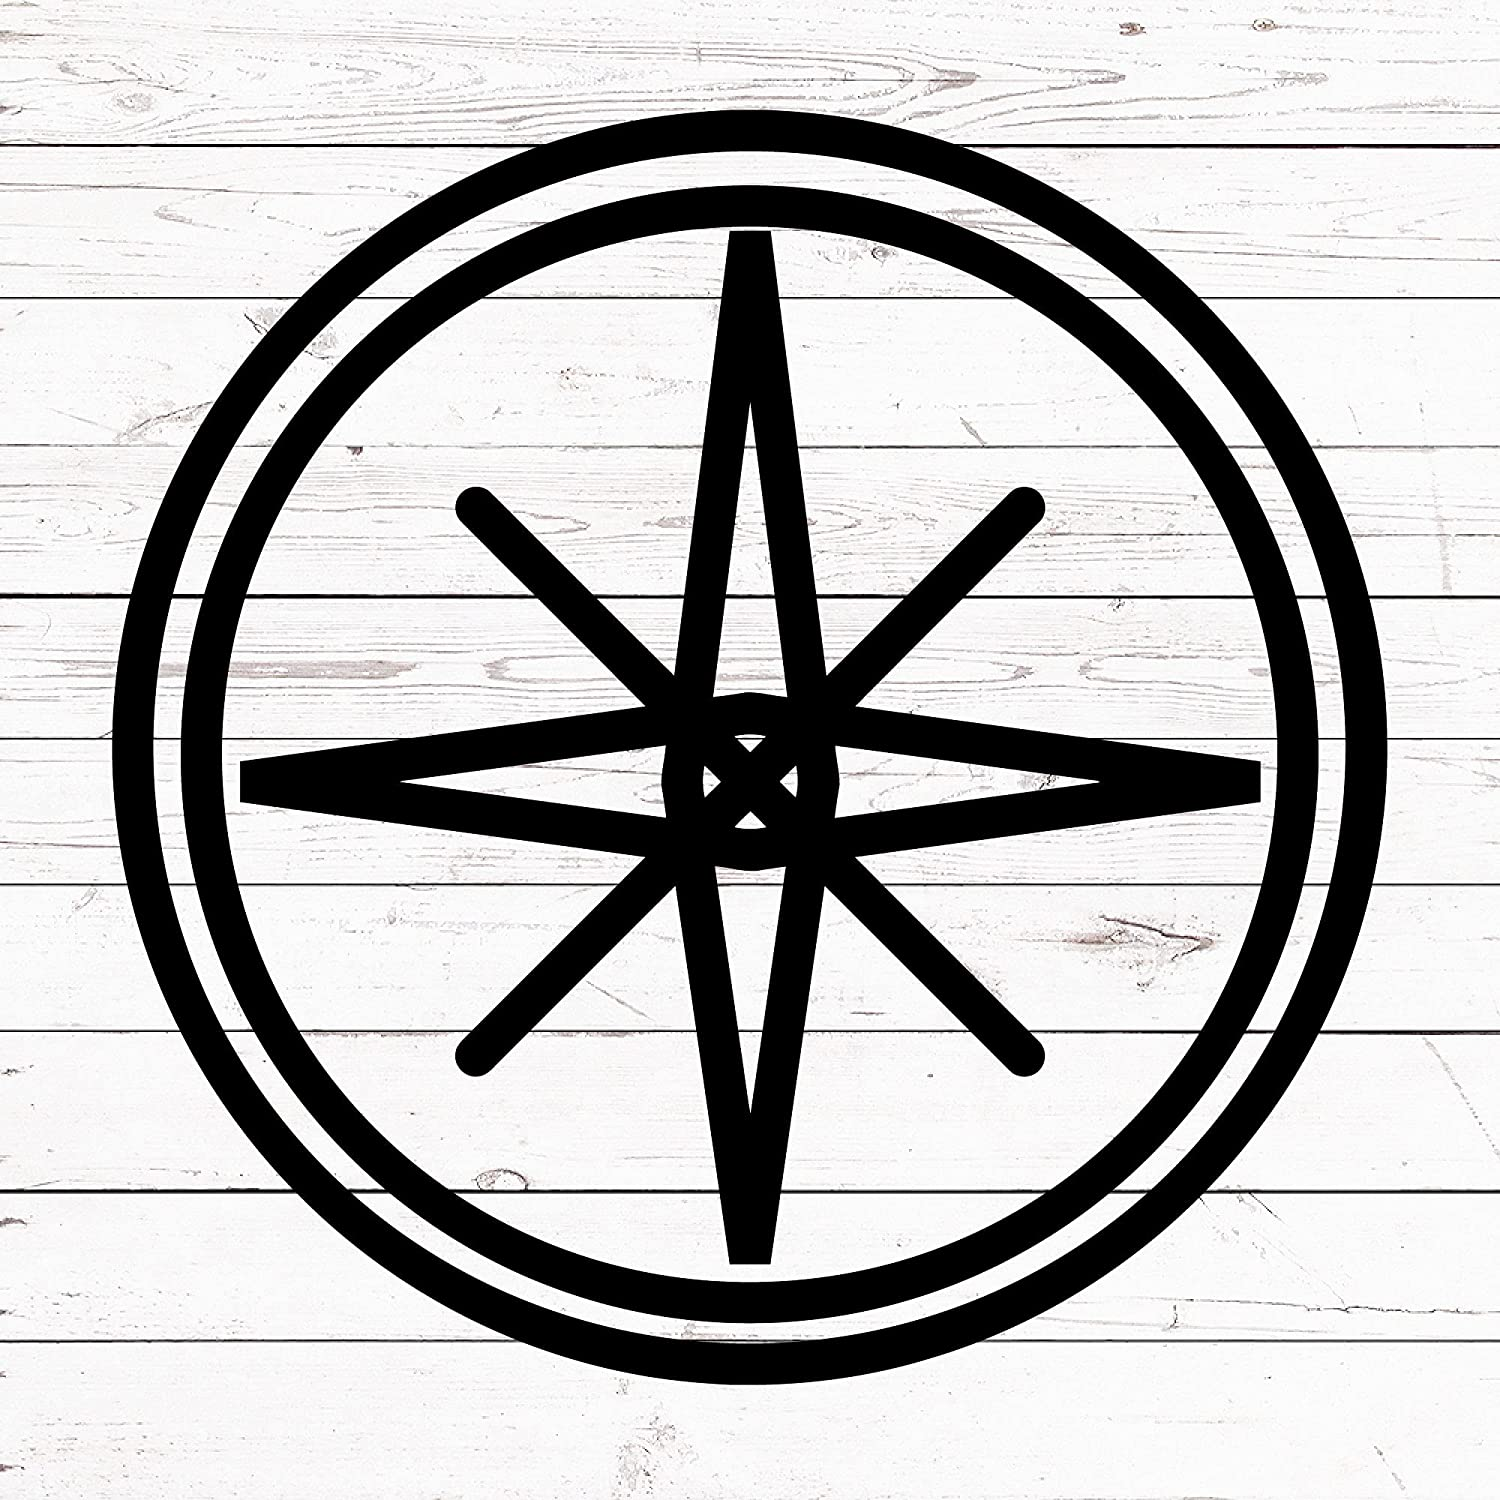 Adecals cool Gorgeous 6 in Compass Sticker Rose Super beauty product restock quality top Travel - St Nautical Wind